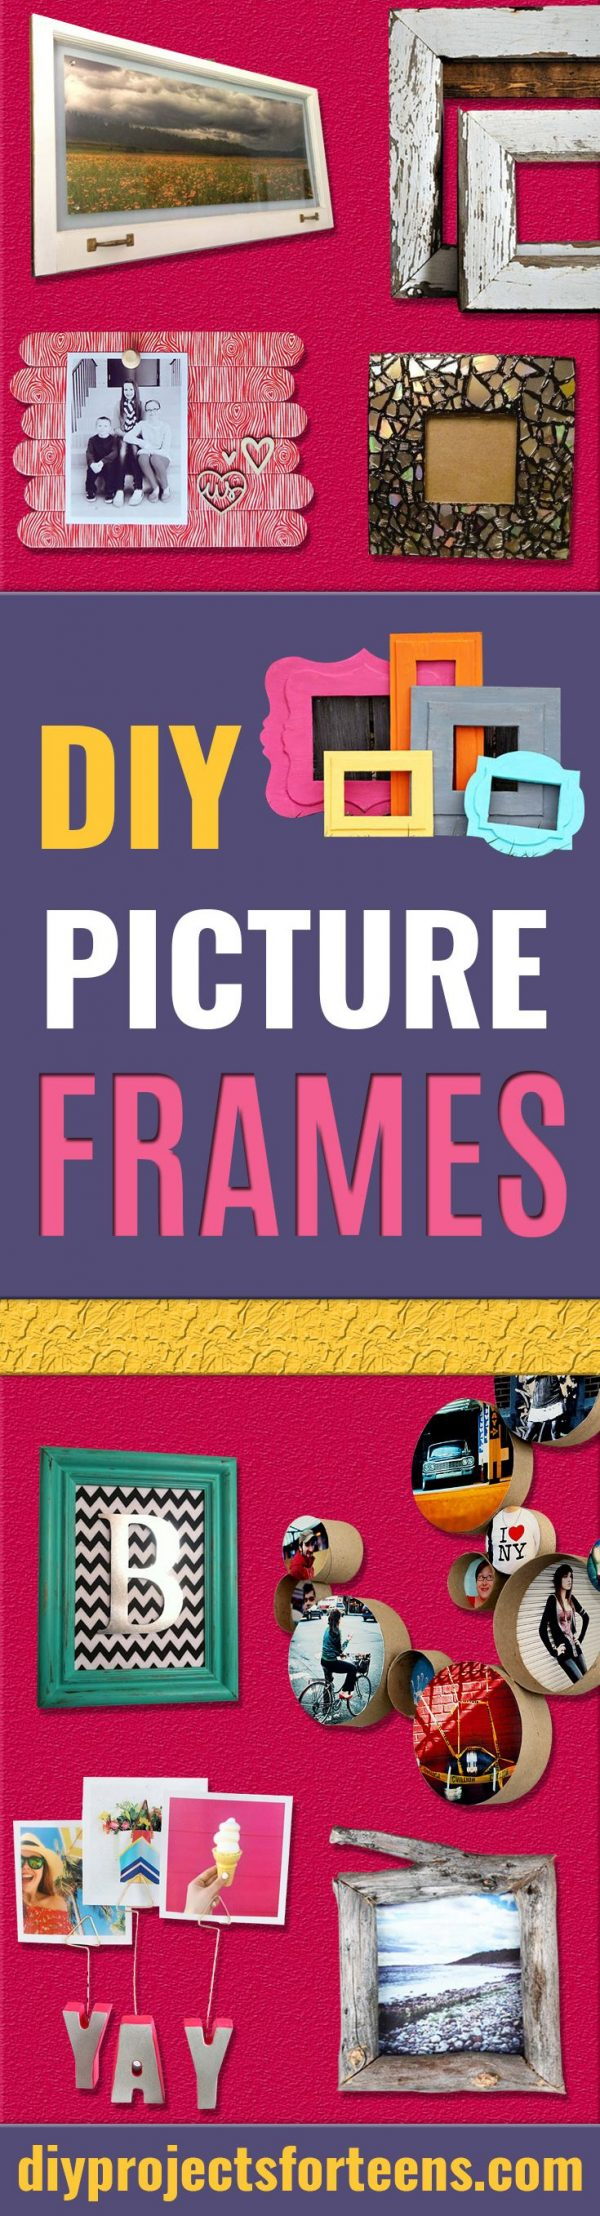 Best DIY Picture Frames and Photo Frame Ideas - How To Make Cool Handmade Projects from Wood, Canvas, Instagram Photos. Creative Birthday Gifts, Fun Crafts for Friends and Wall Art Tutorials #diyideas #diygifts #teencrafts